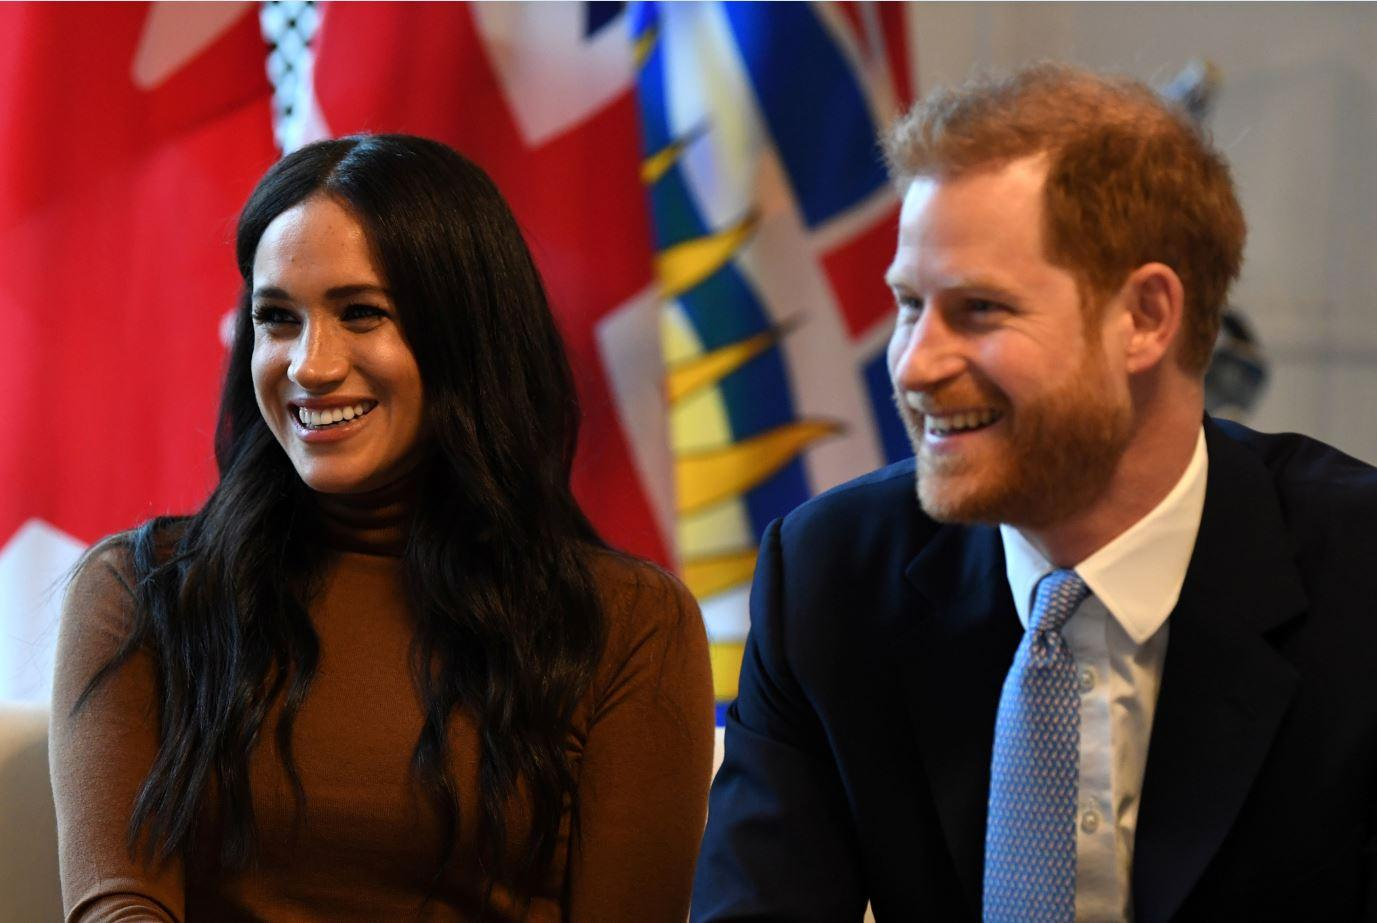 duchess meghan speaks about miscarriage in new york times article duchess meghan speaks about miscarriage